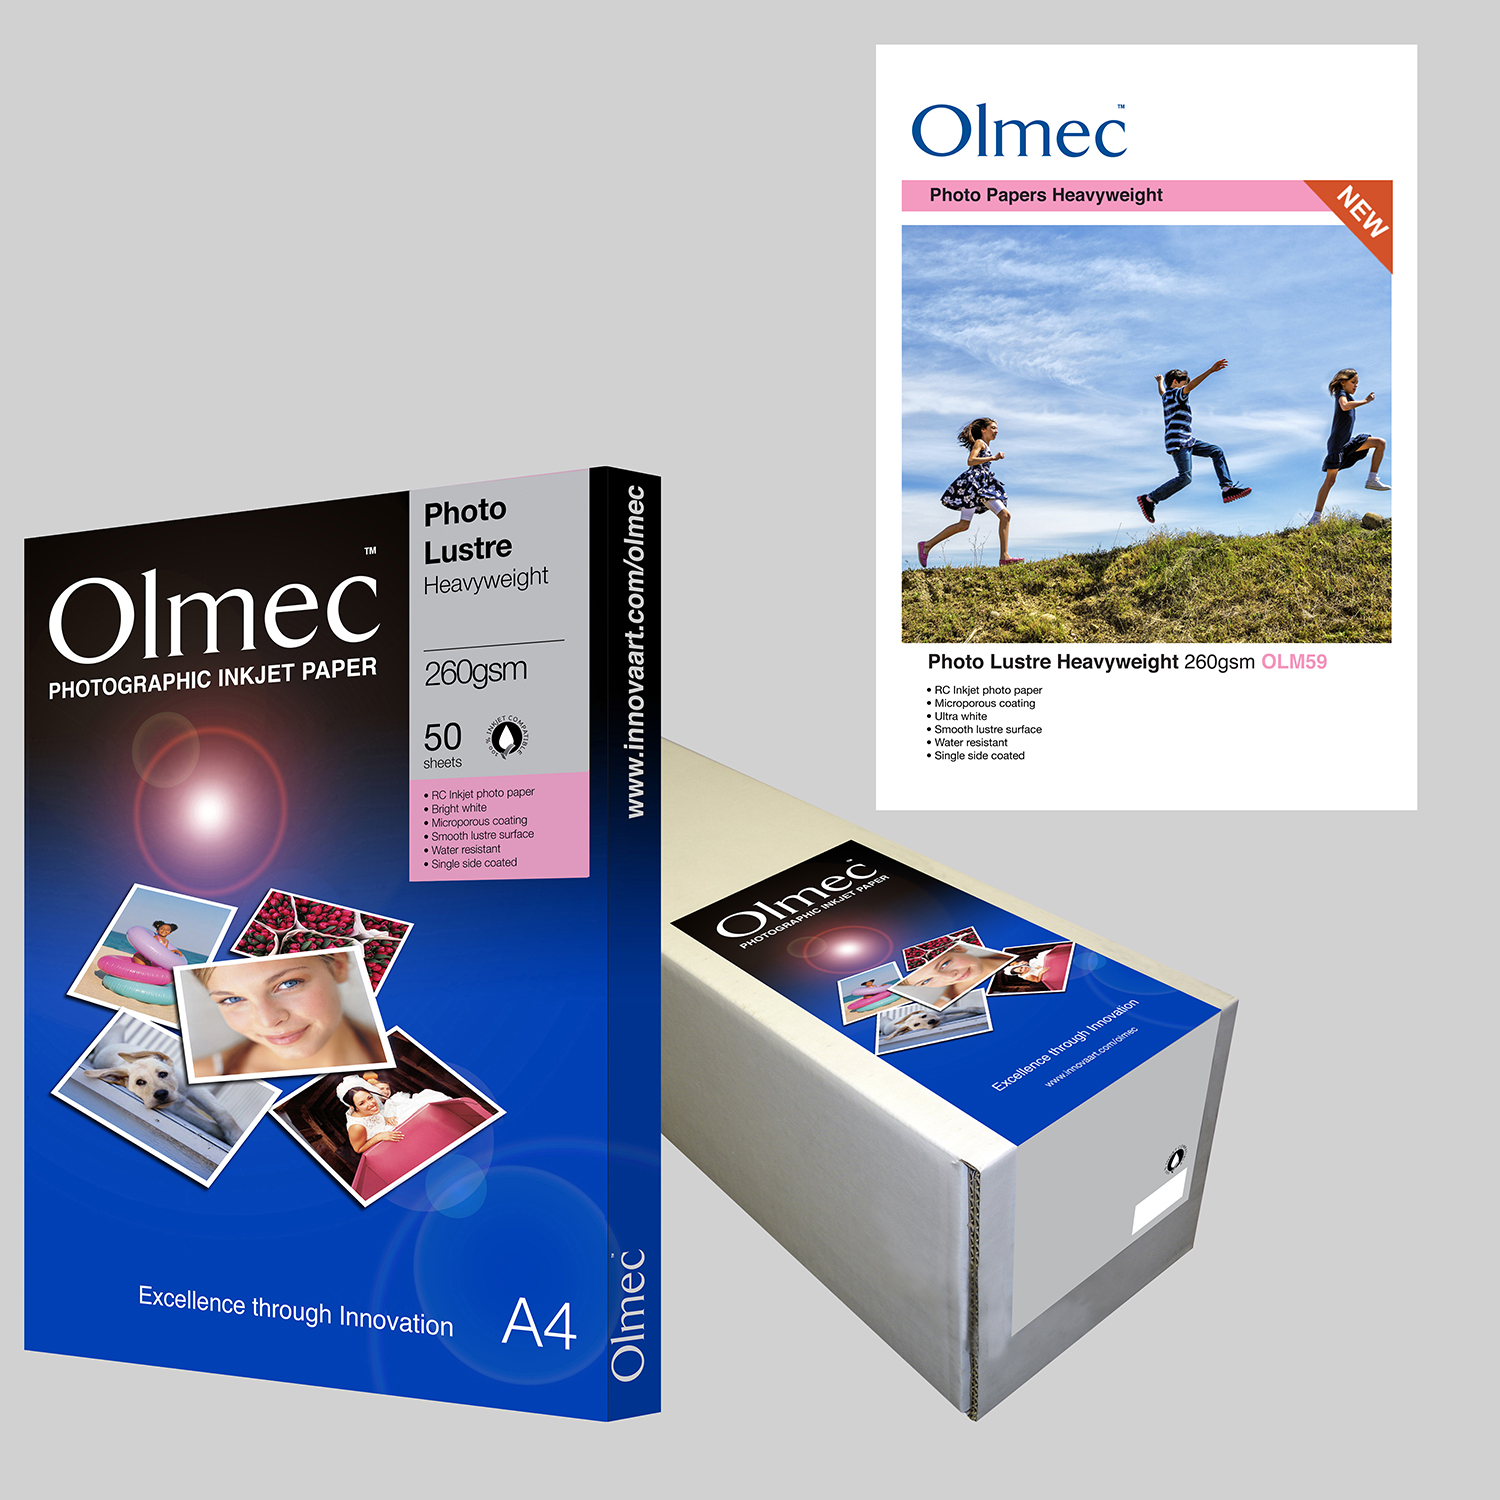 Olmec Photo Lustre Heavyweight 260gsm OLM 59